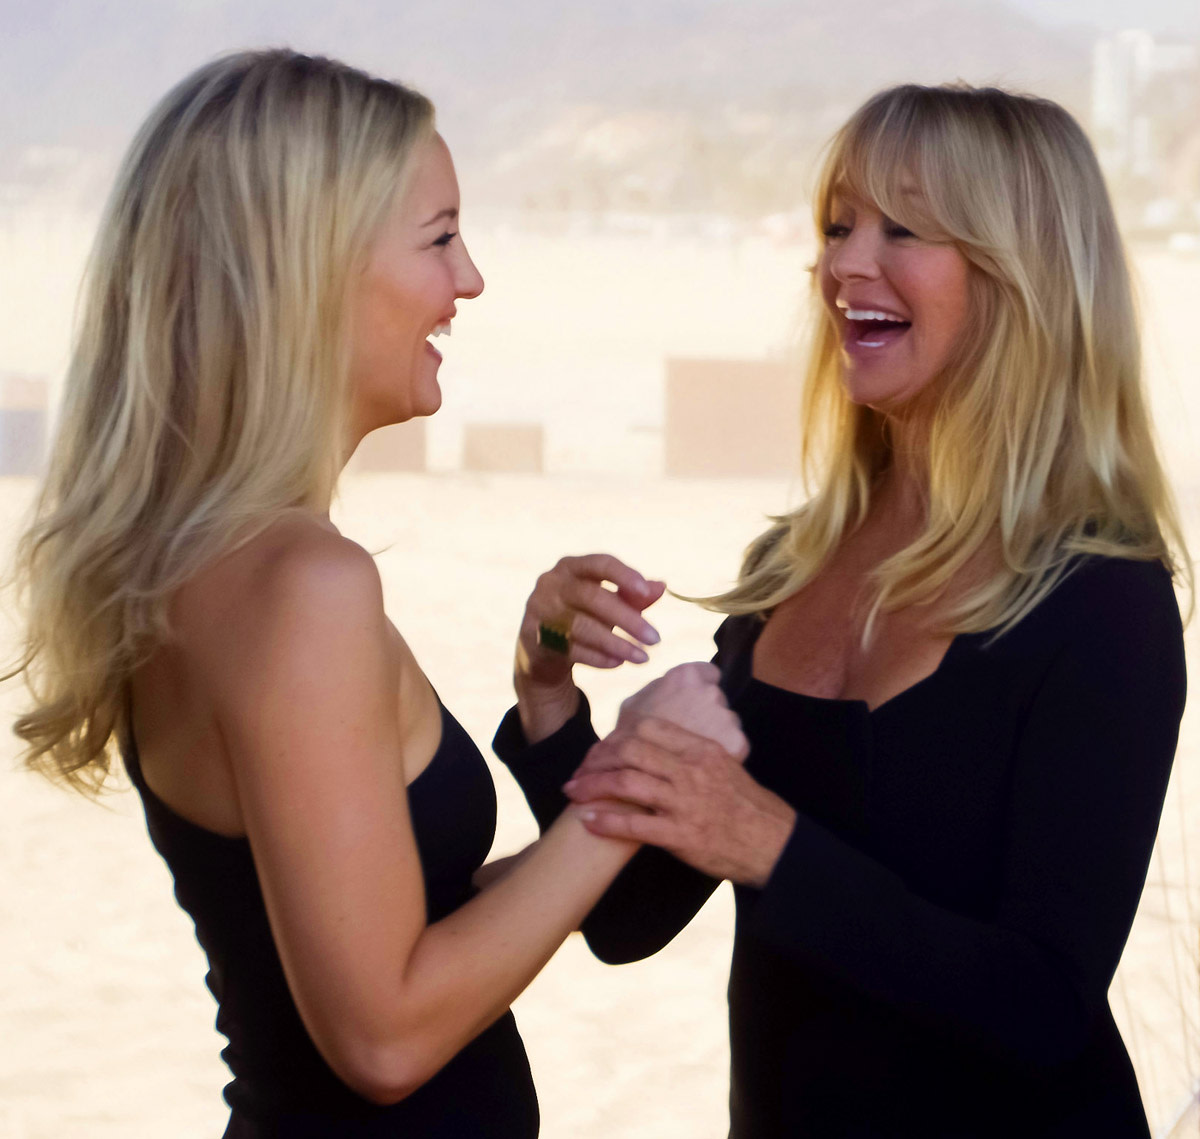 20121015_Almay_Kate-Hudson-and-Goldie-Hawn-on-the-Mothers-Day-photoshoot-set-for-Almay1.jpg